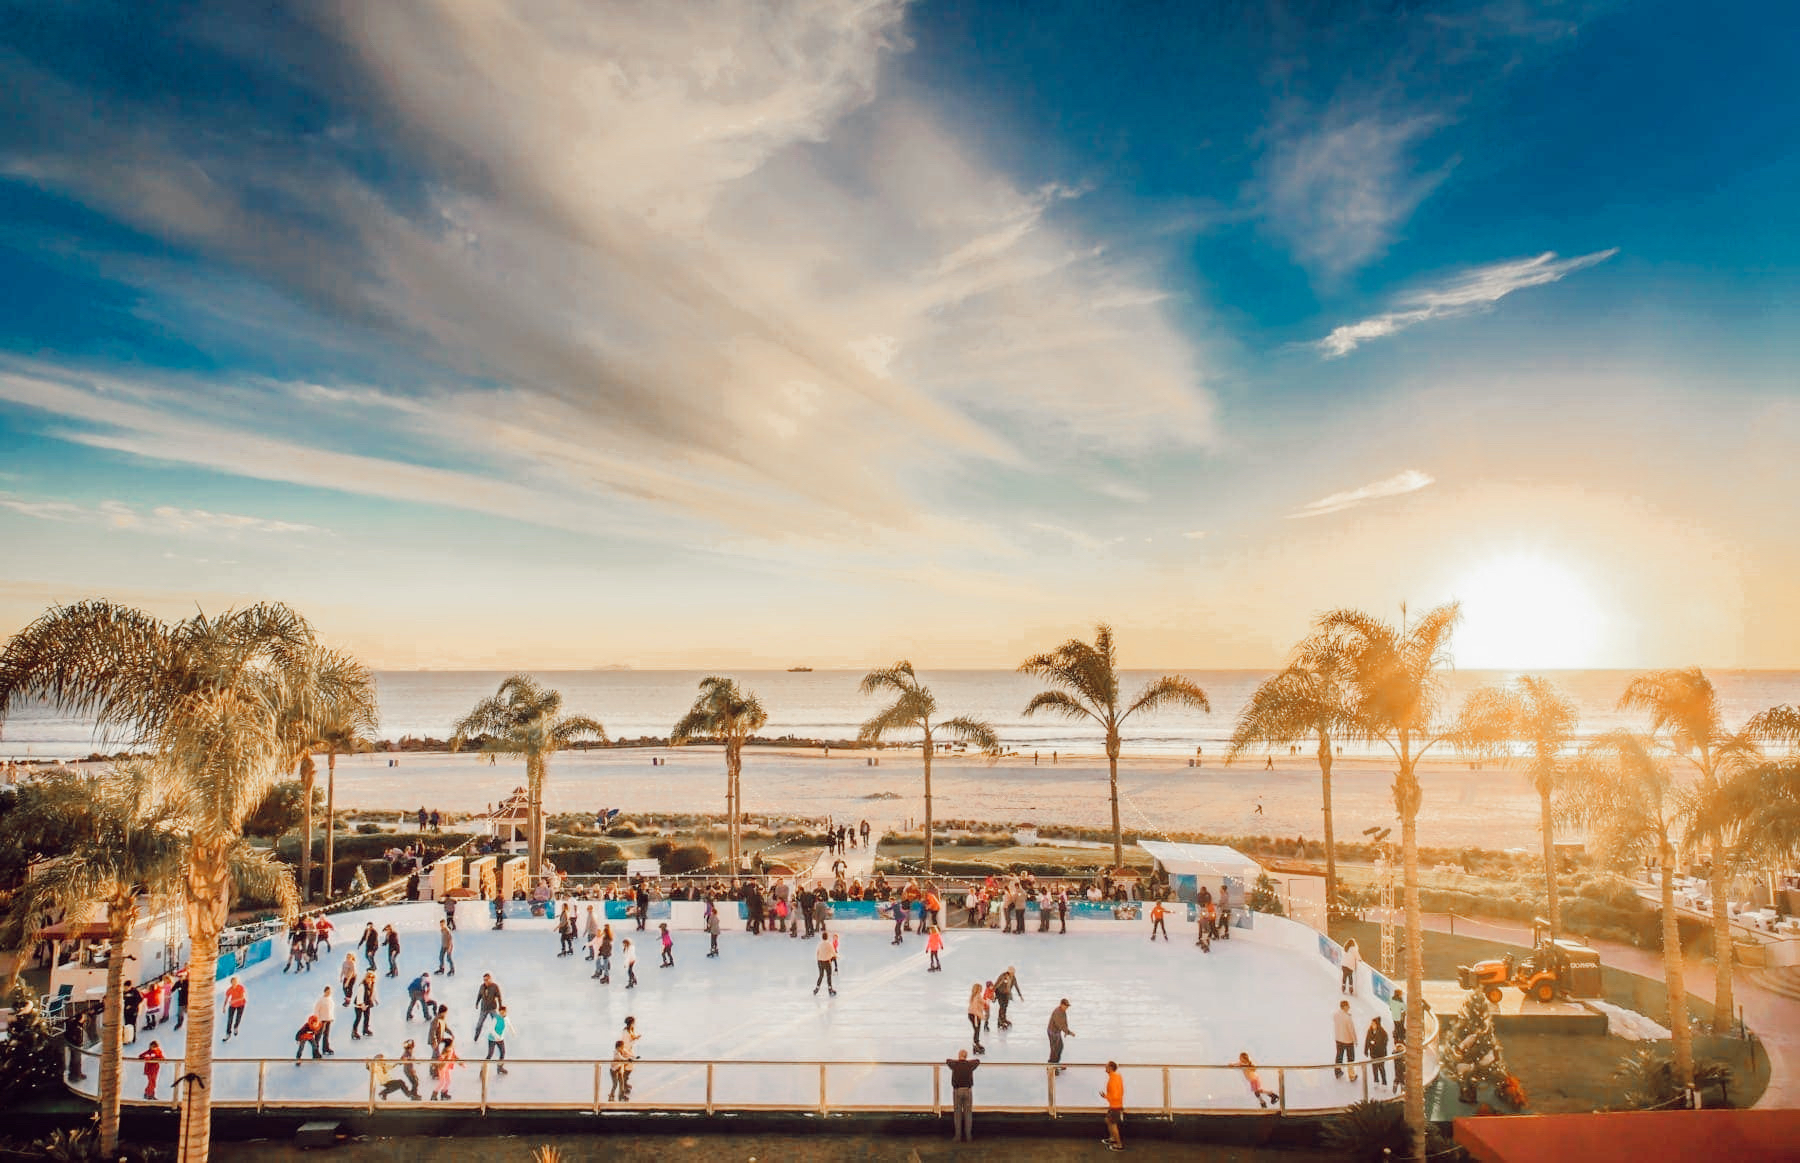 ice rink at the beach